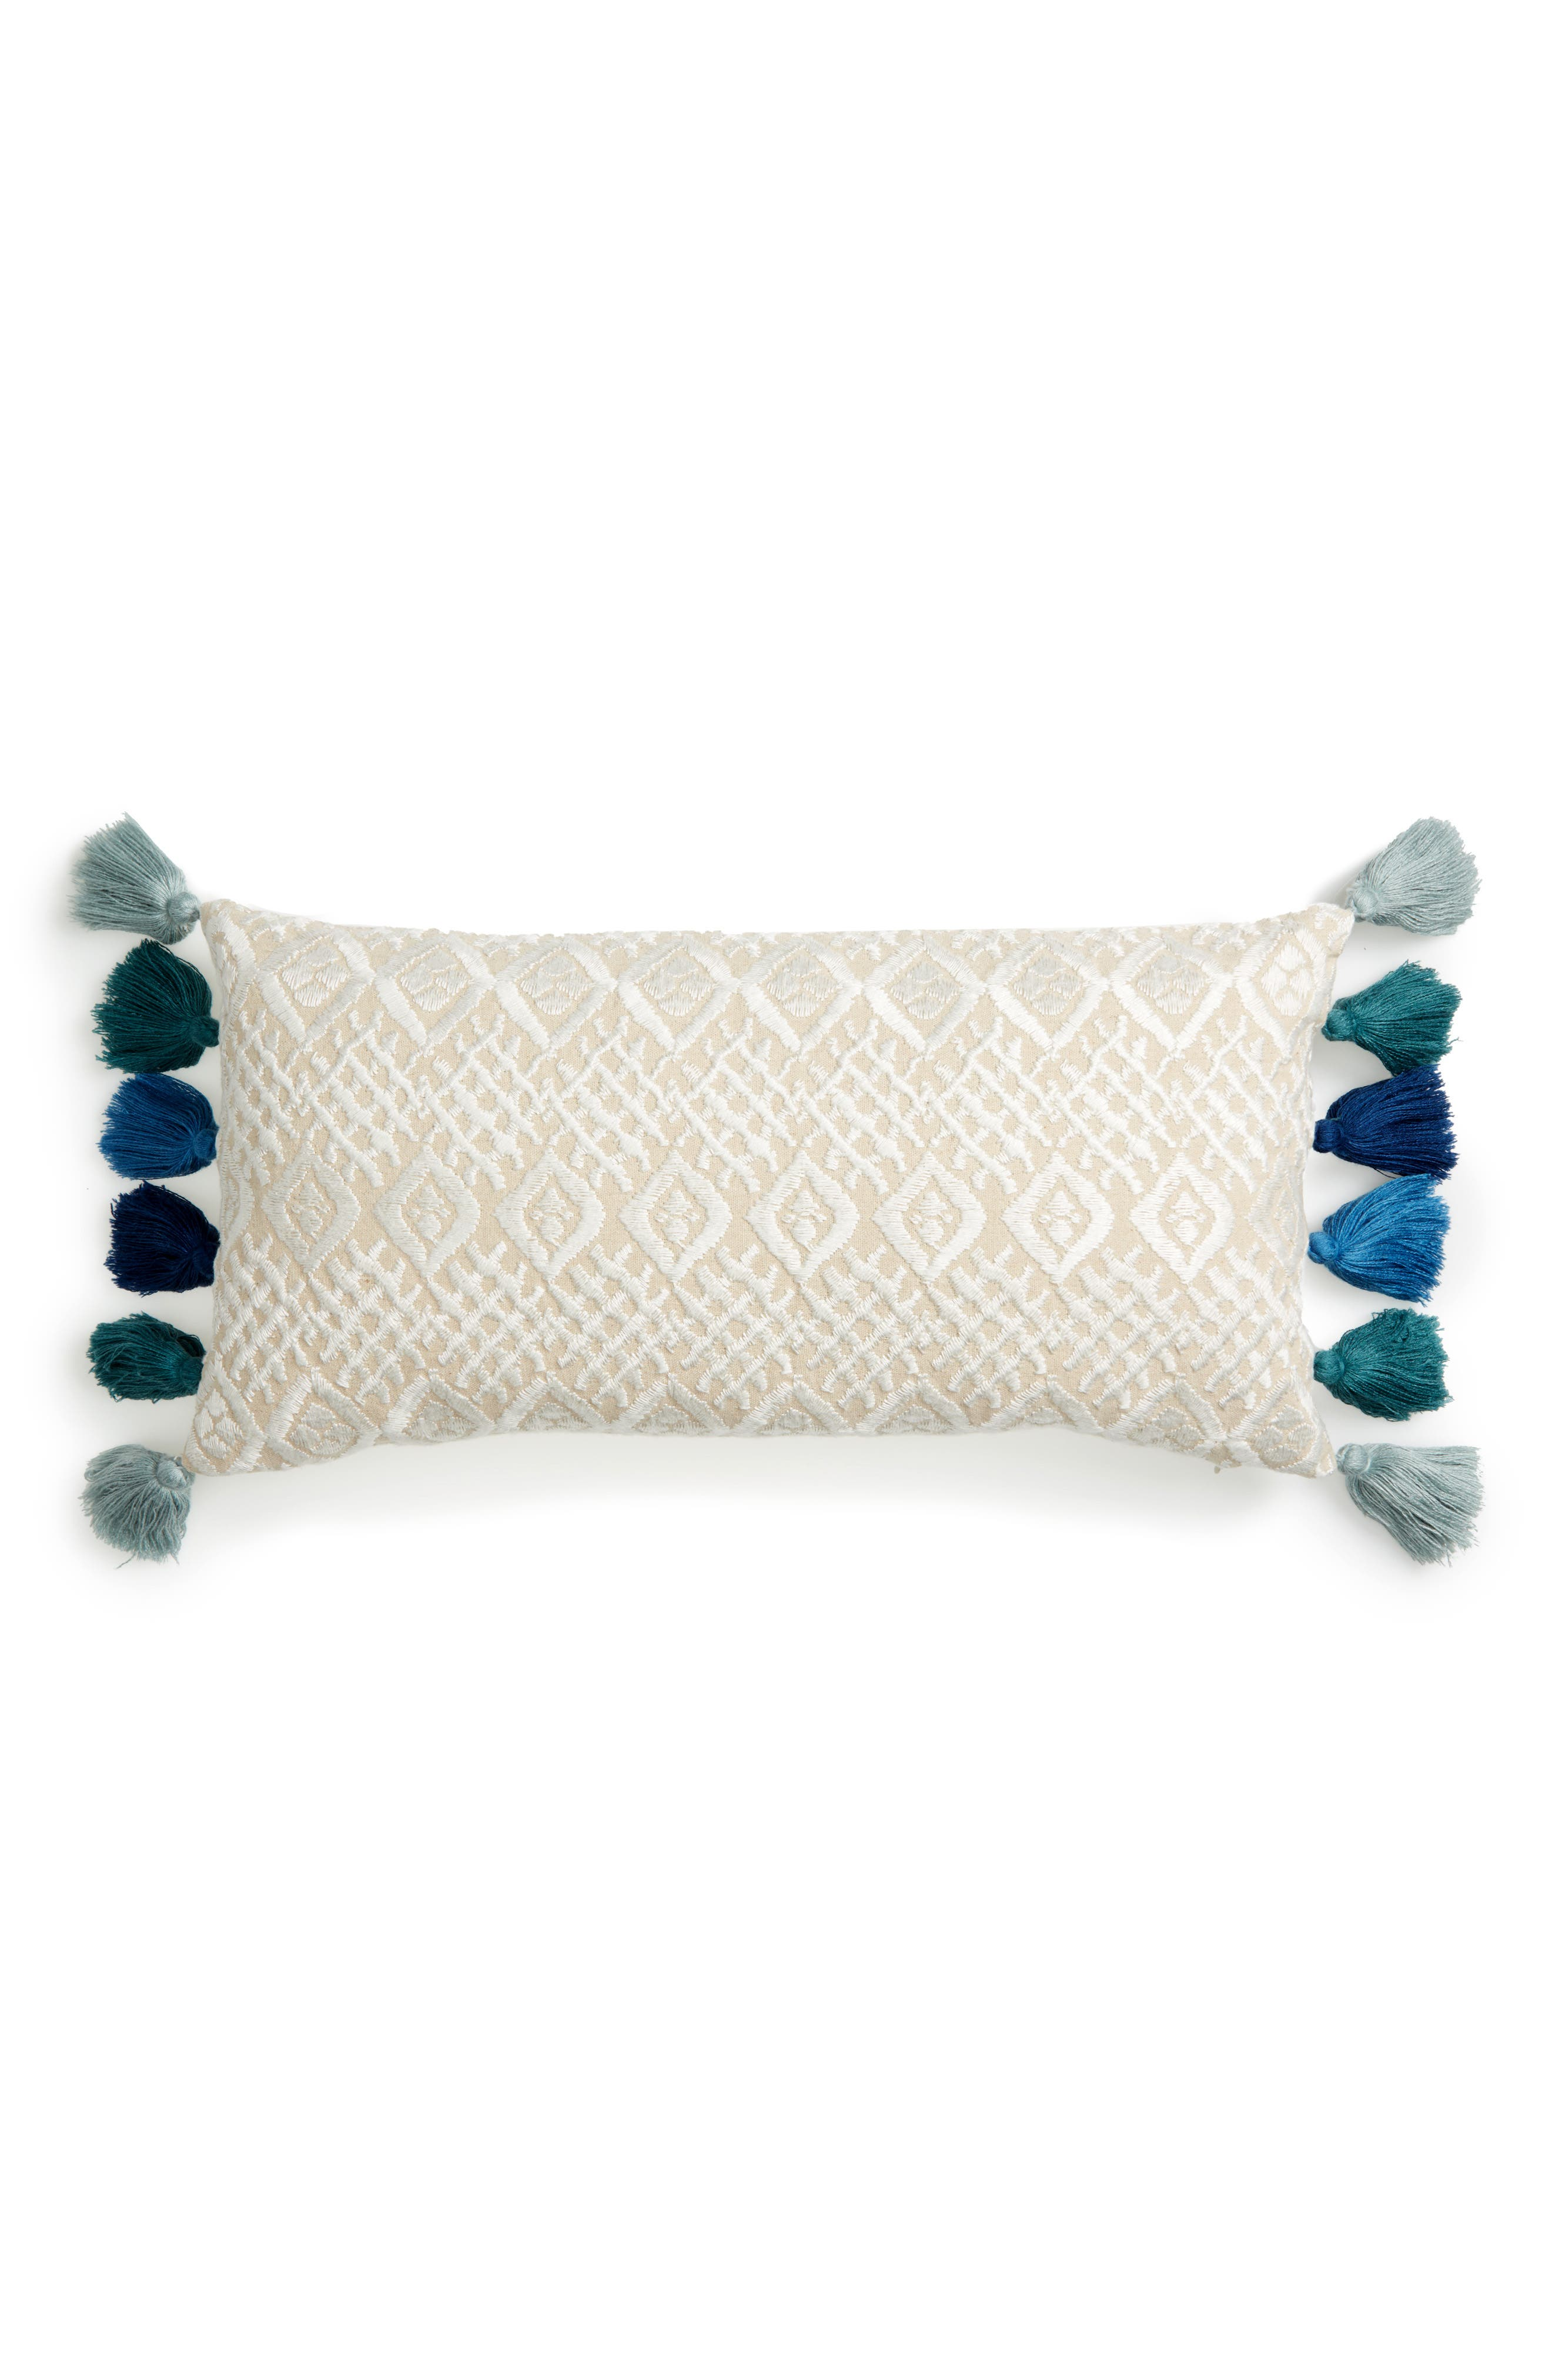 Beckett Embroidered Pillow,                         Main,                         color, Natural